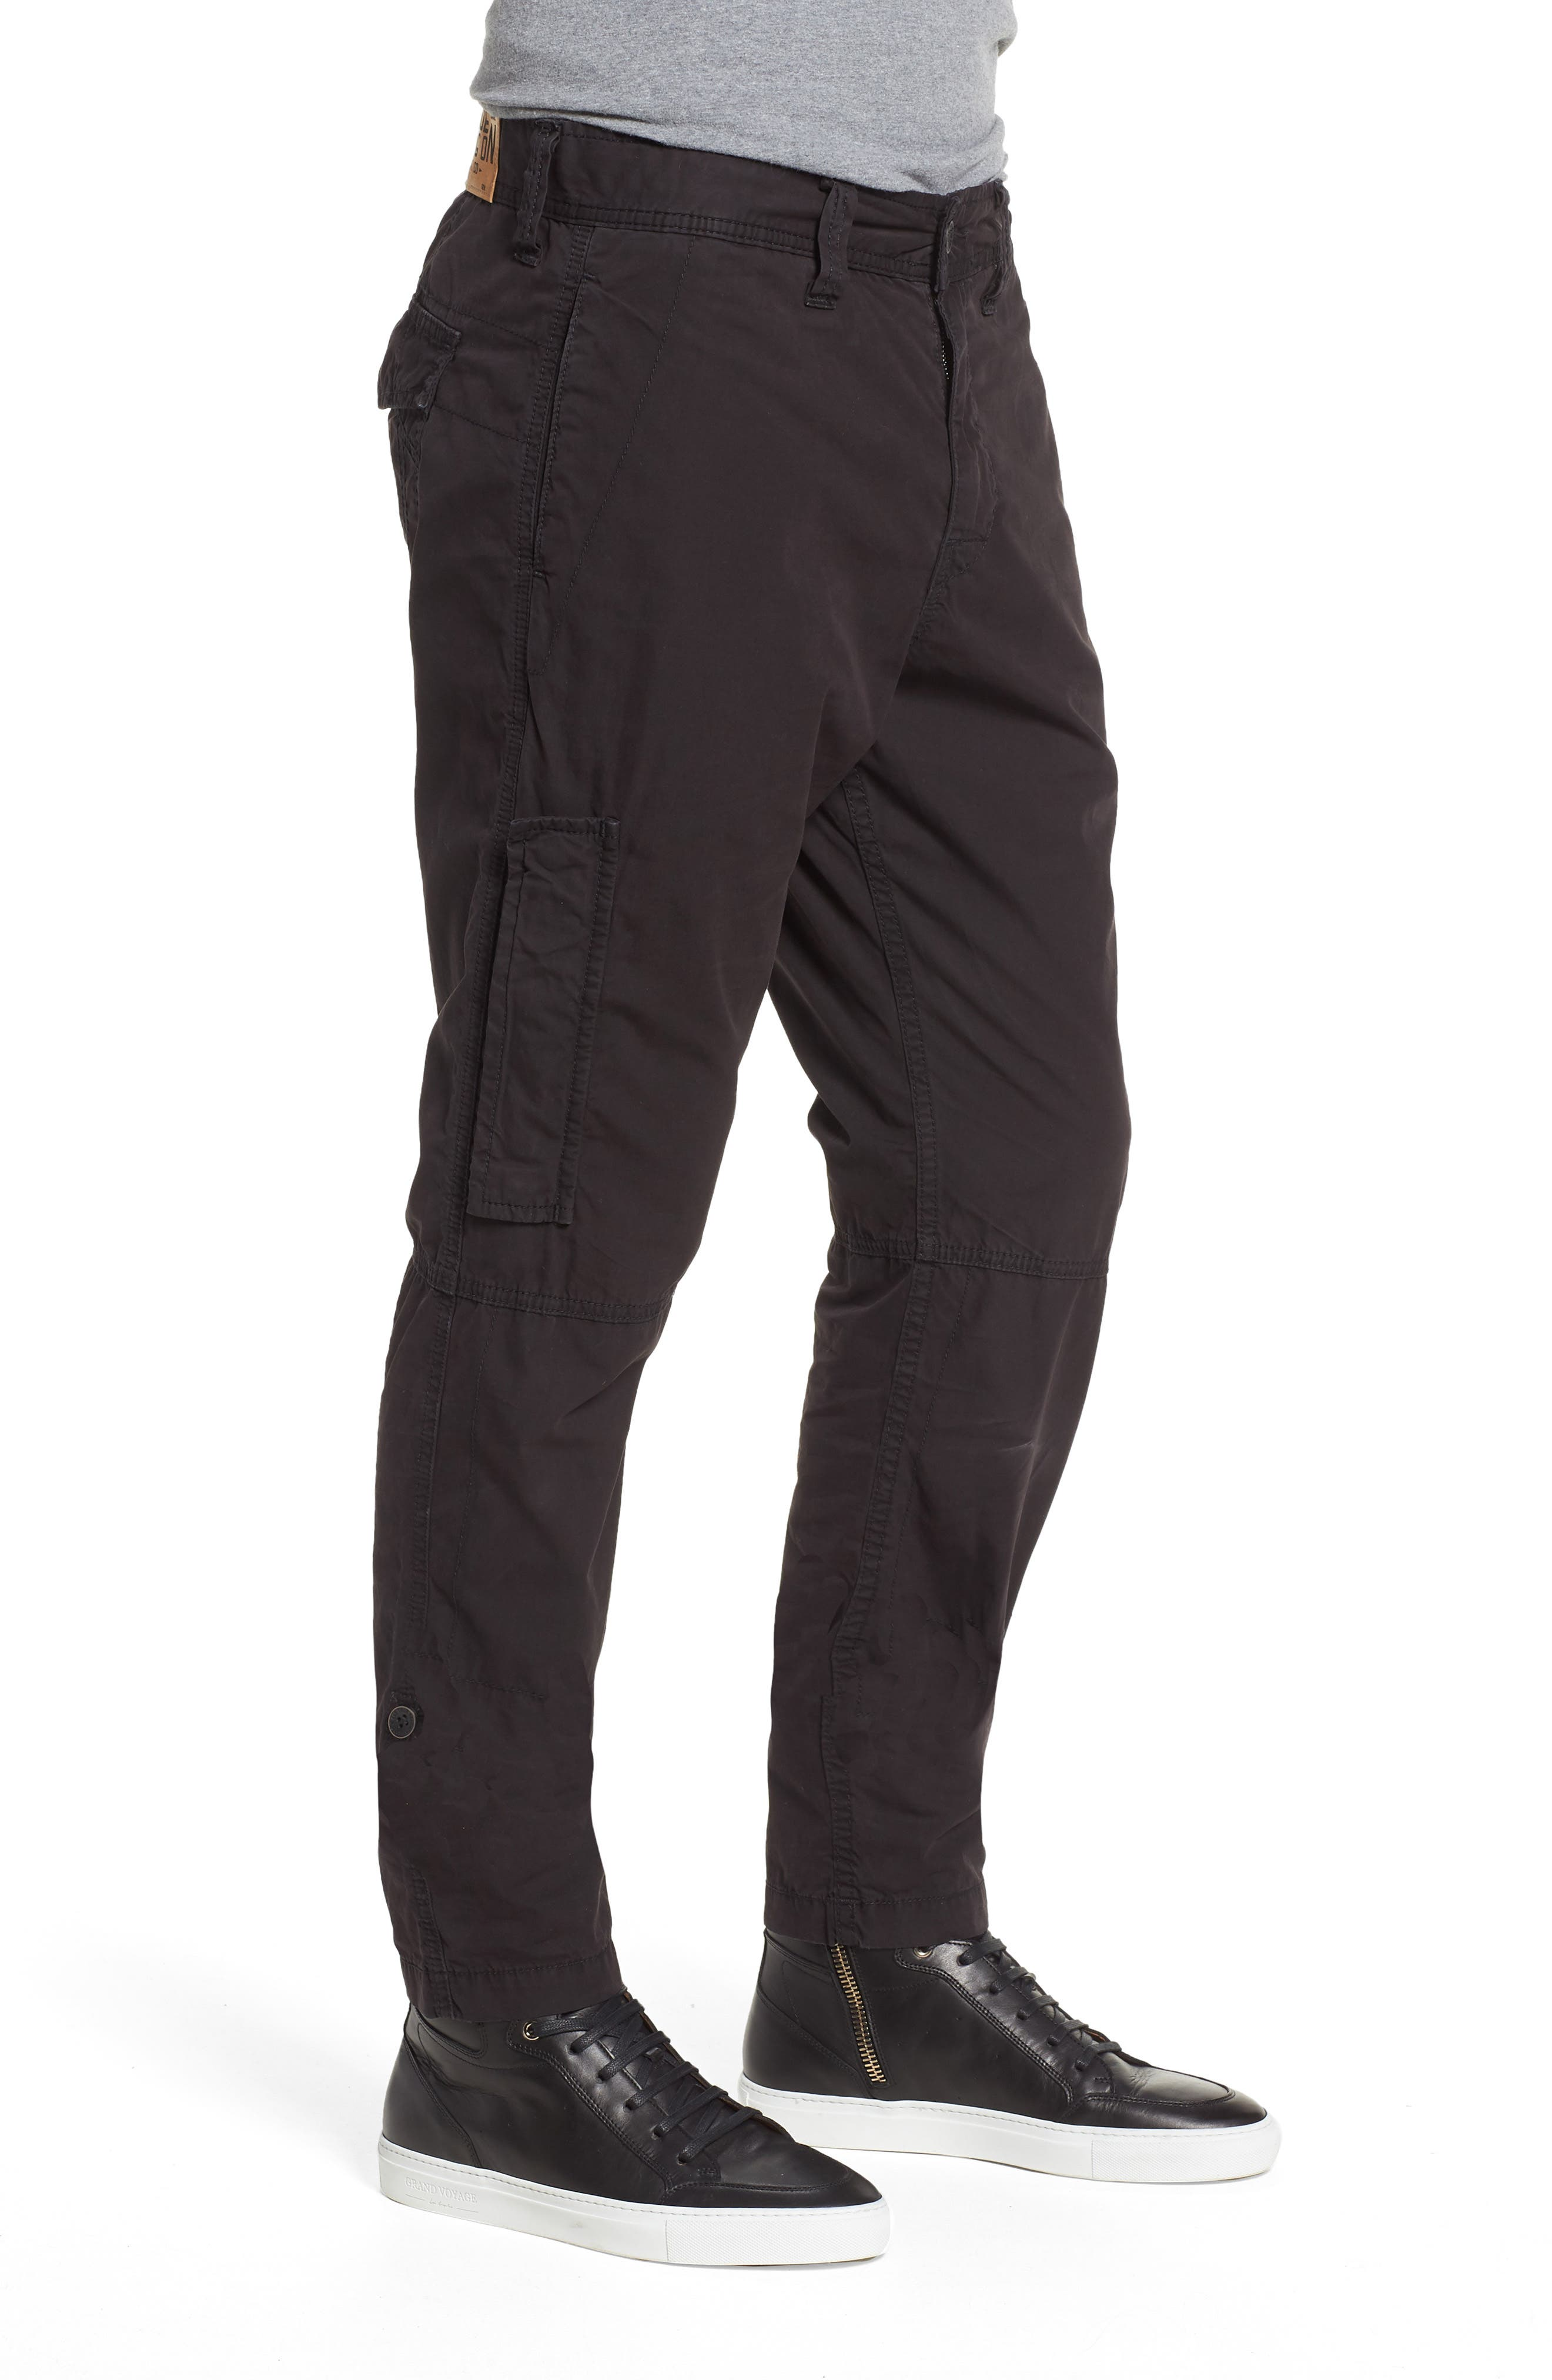 Officer Field Pants,                             Alternate thumbnail 3, color,                             001